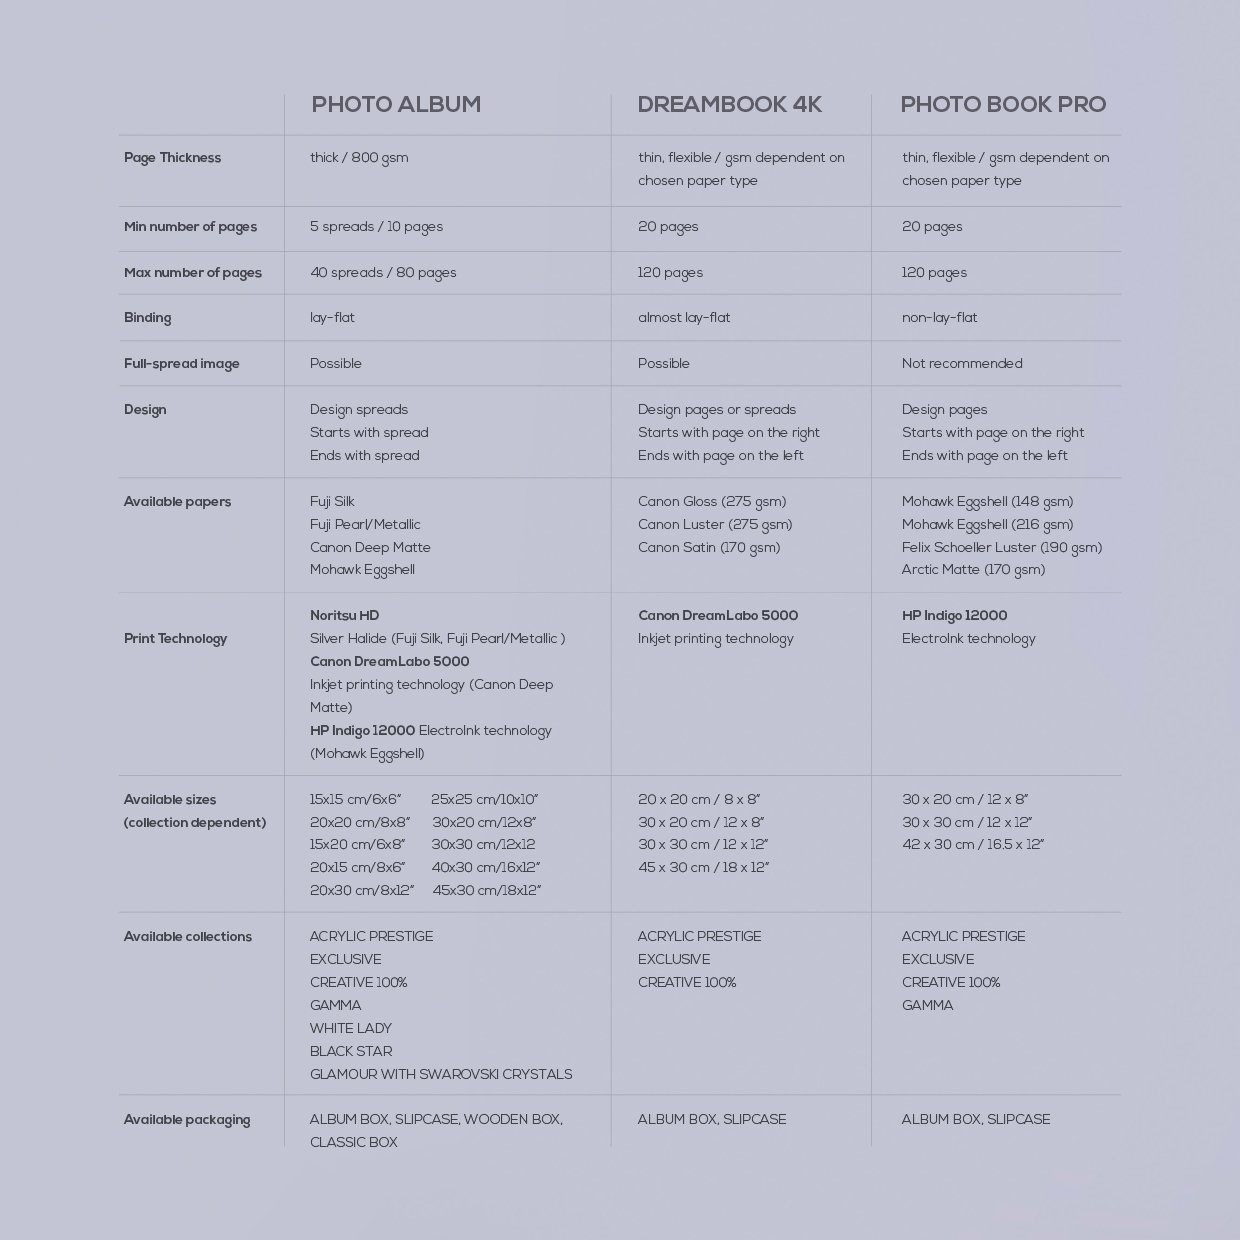 Table of specifications of Complete Sets